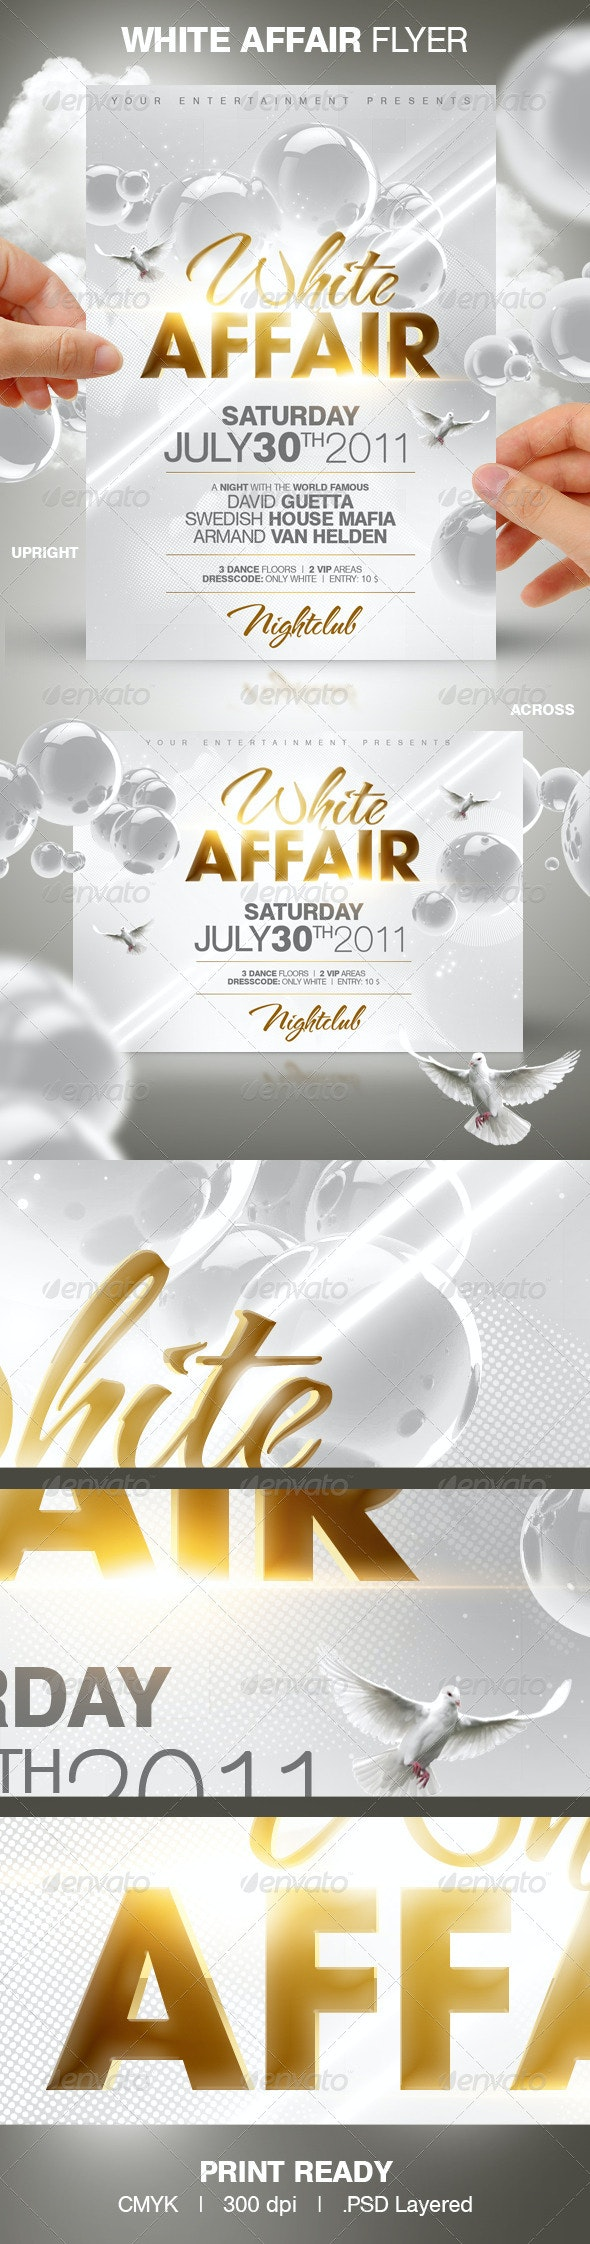 White Affair Party Flyer - Clubs & Parties Events